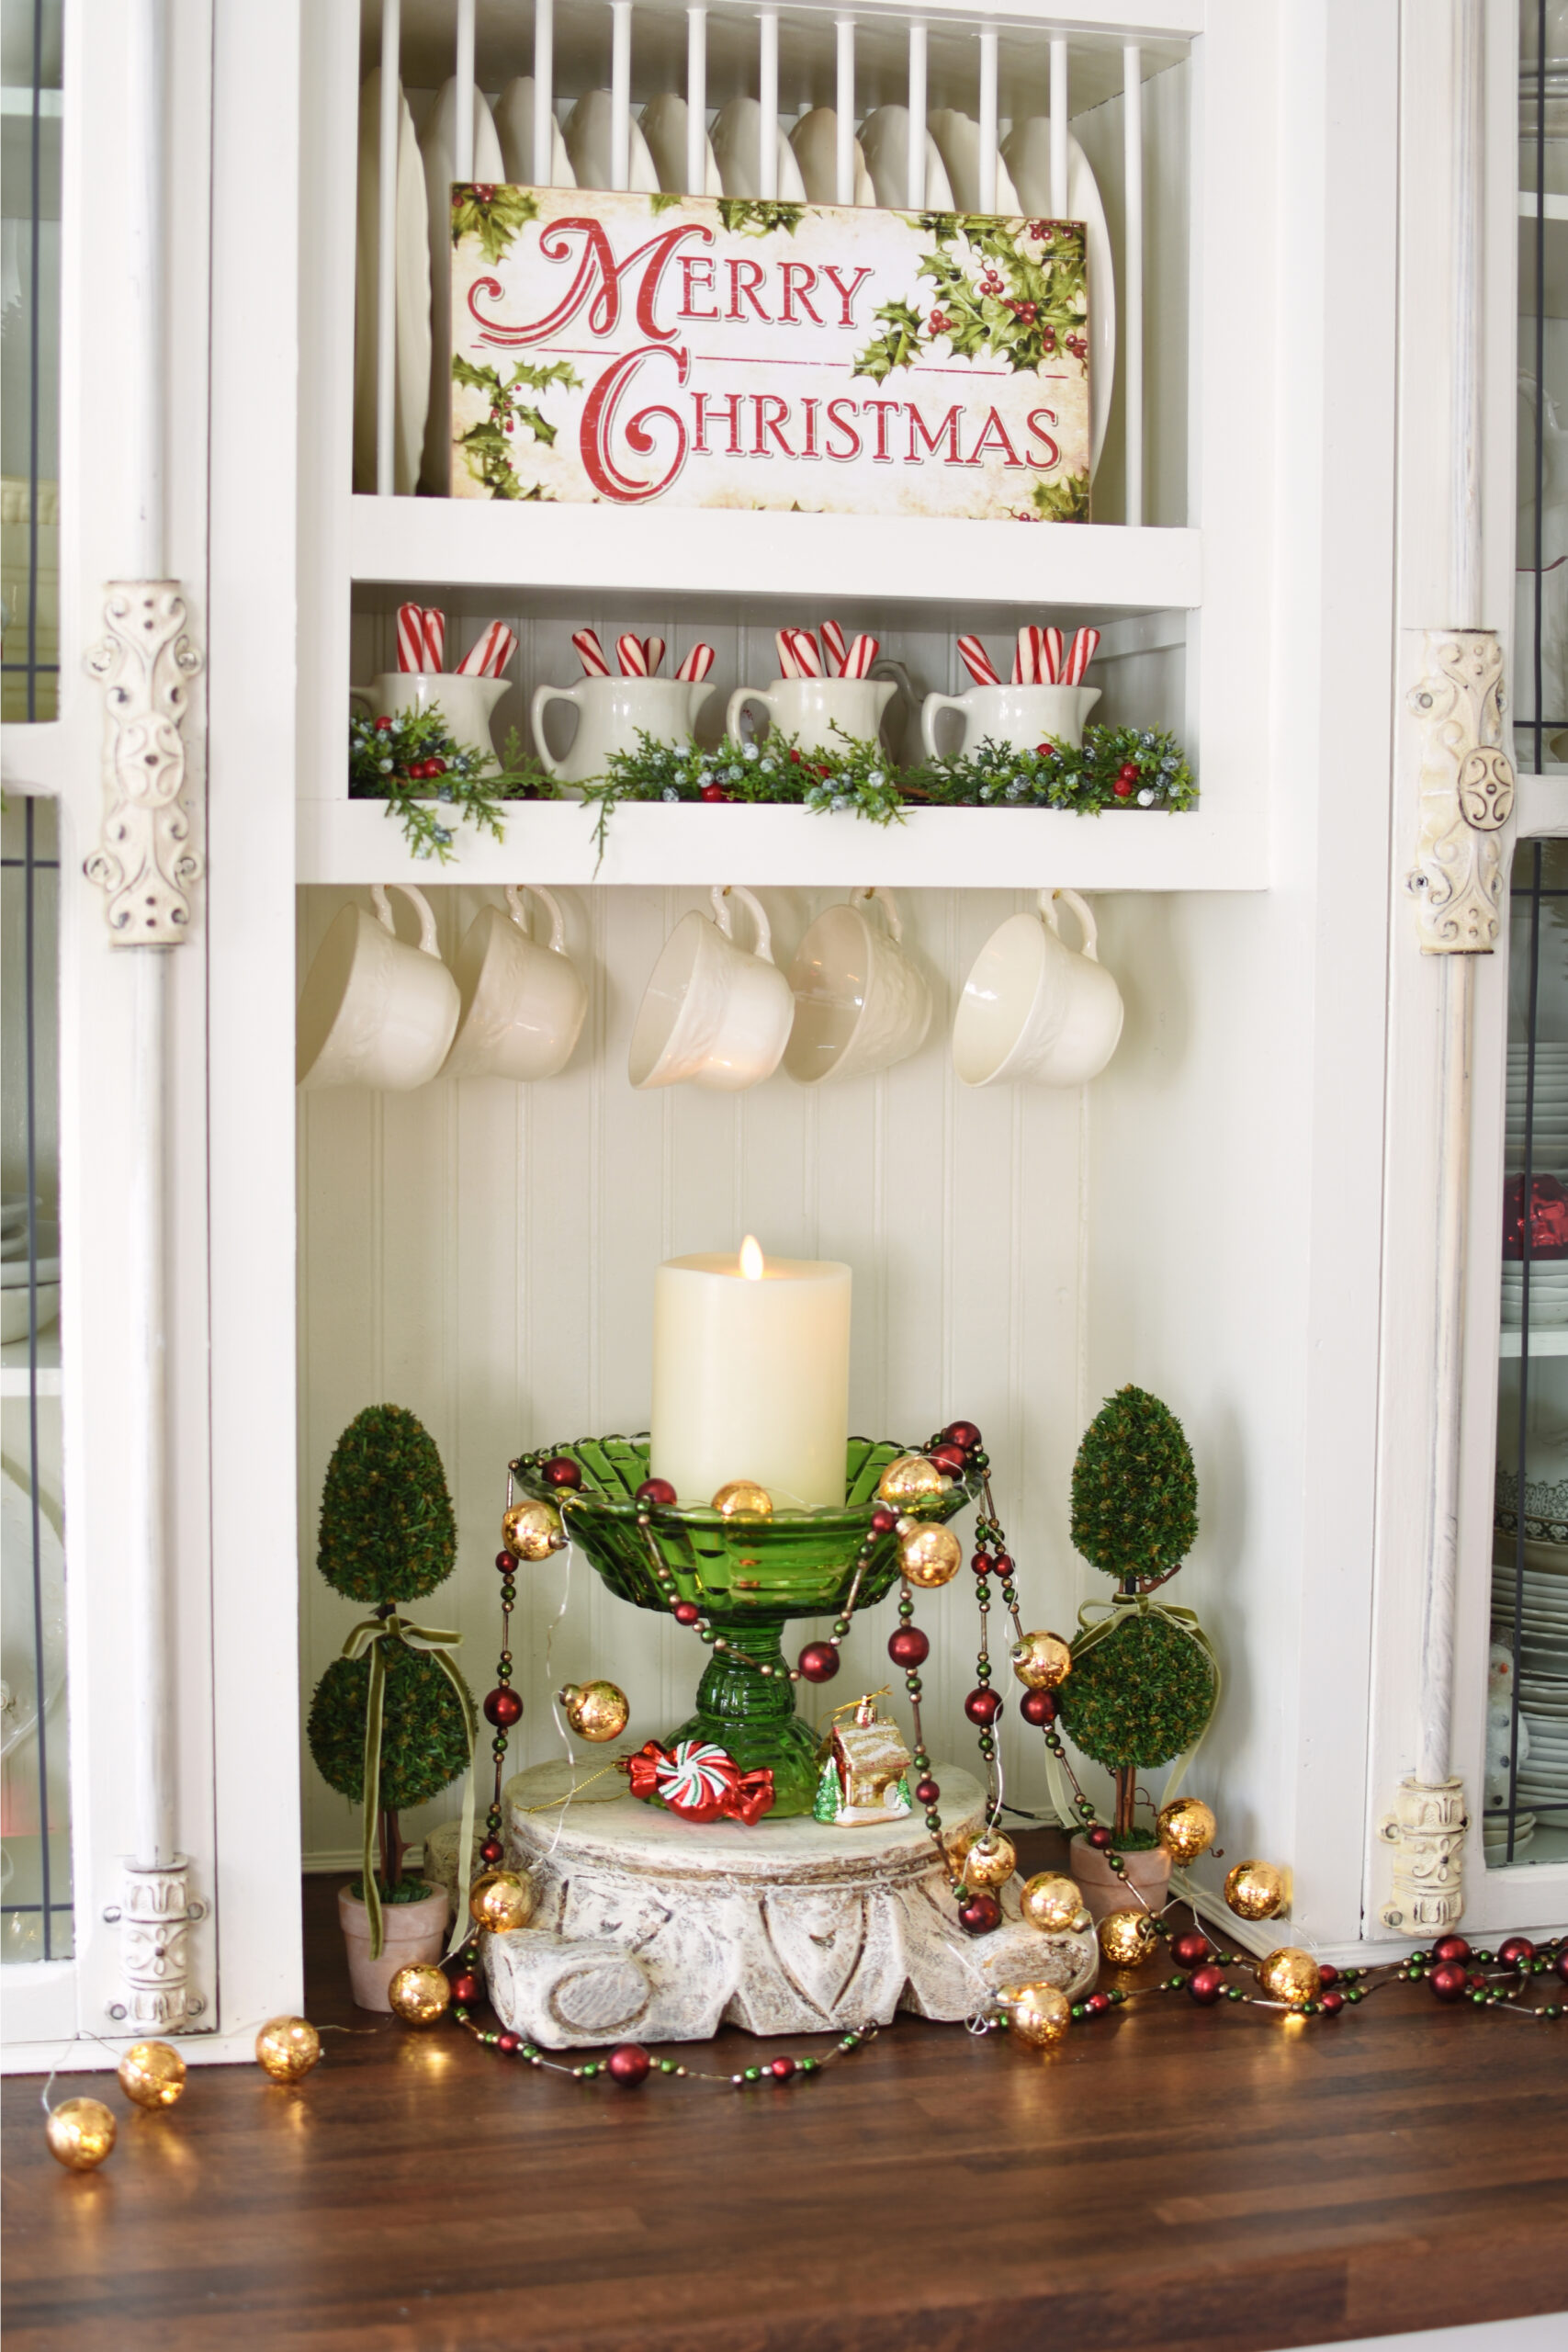 Beautiful Christmas kitchen with plate rack and hanging teacup